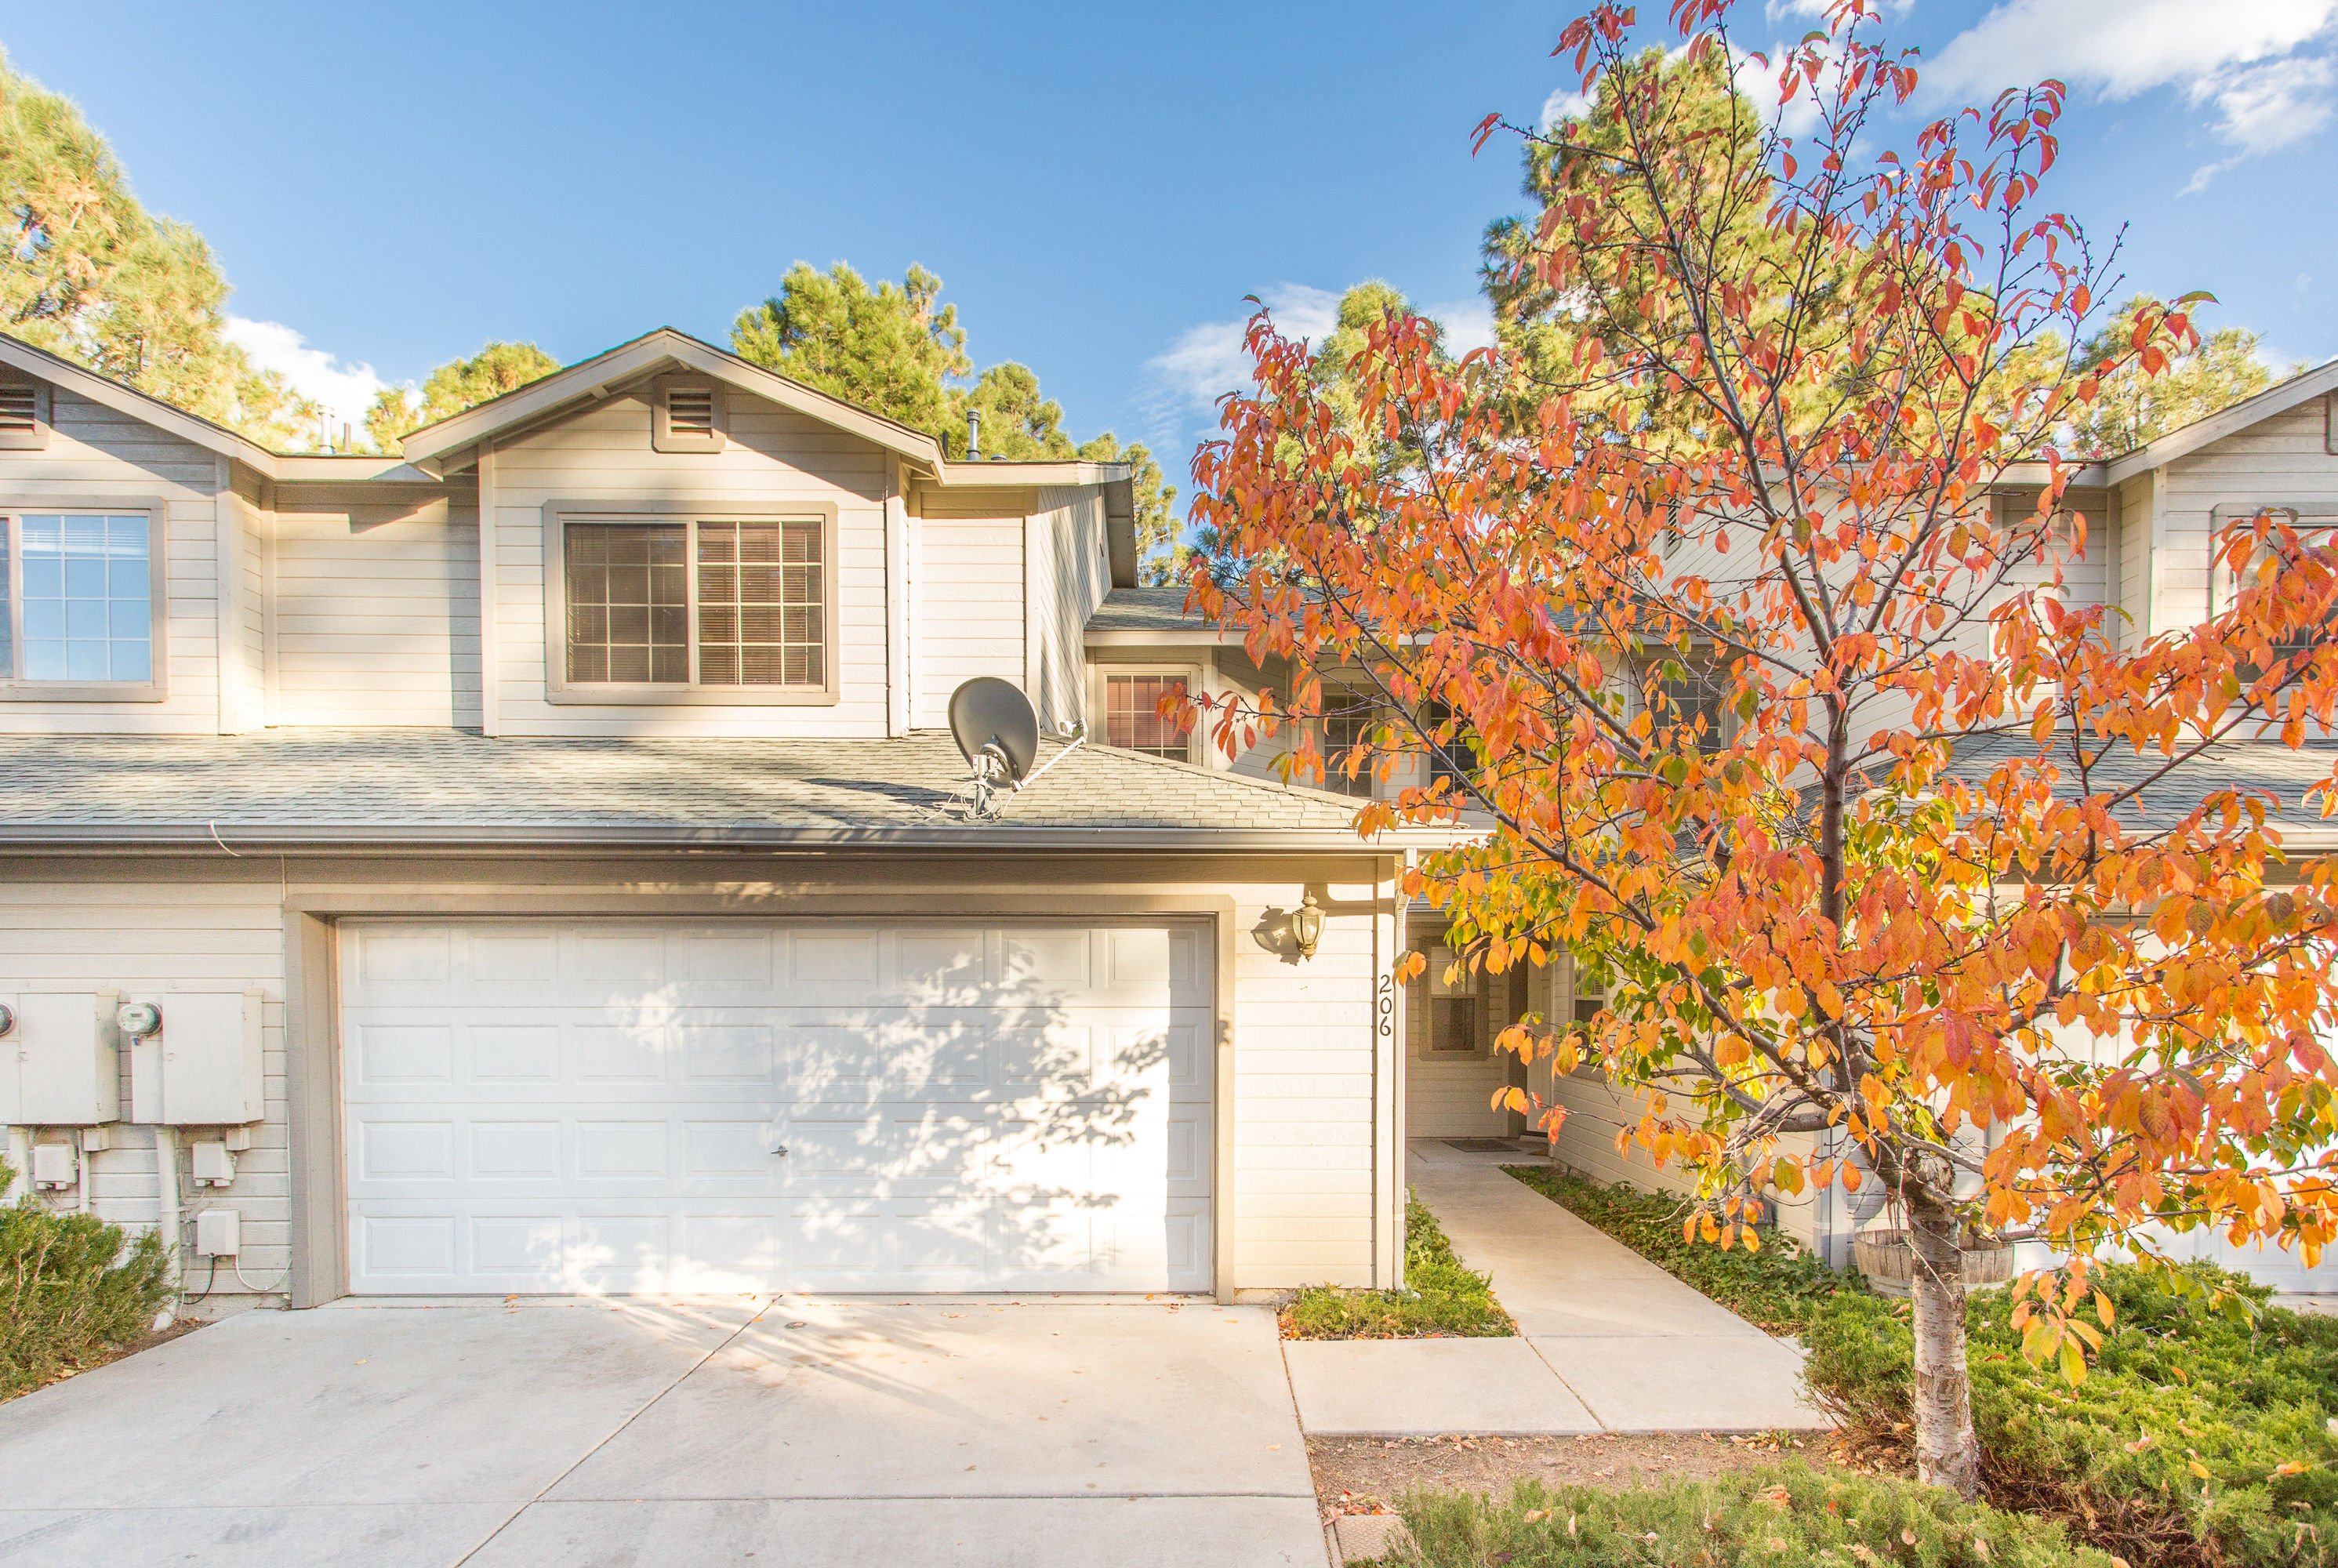 Fabulous 3 bedroom, 2.5 bathroom Townhome for Sale! image 1